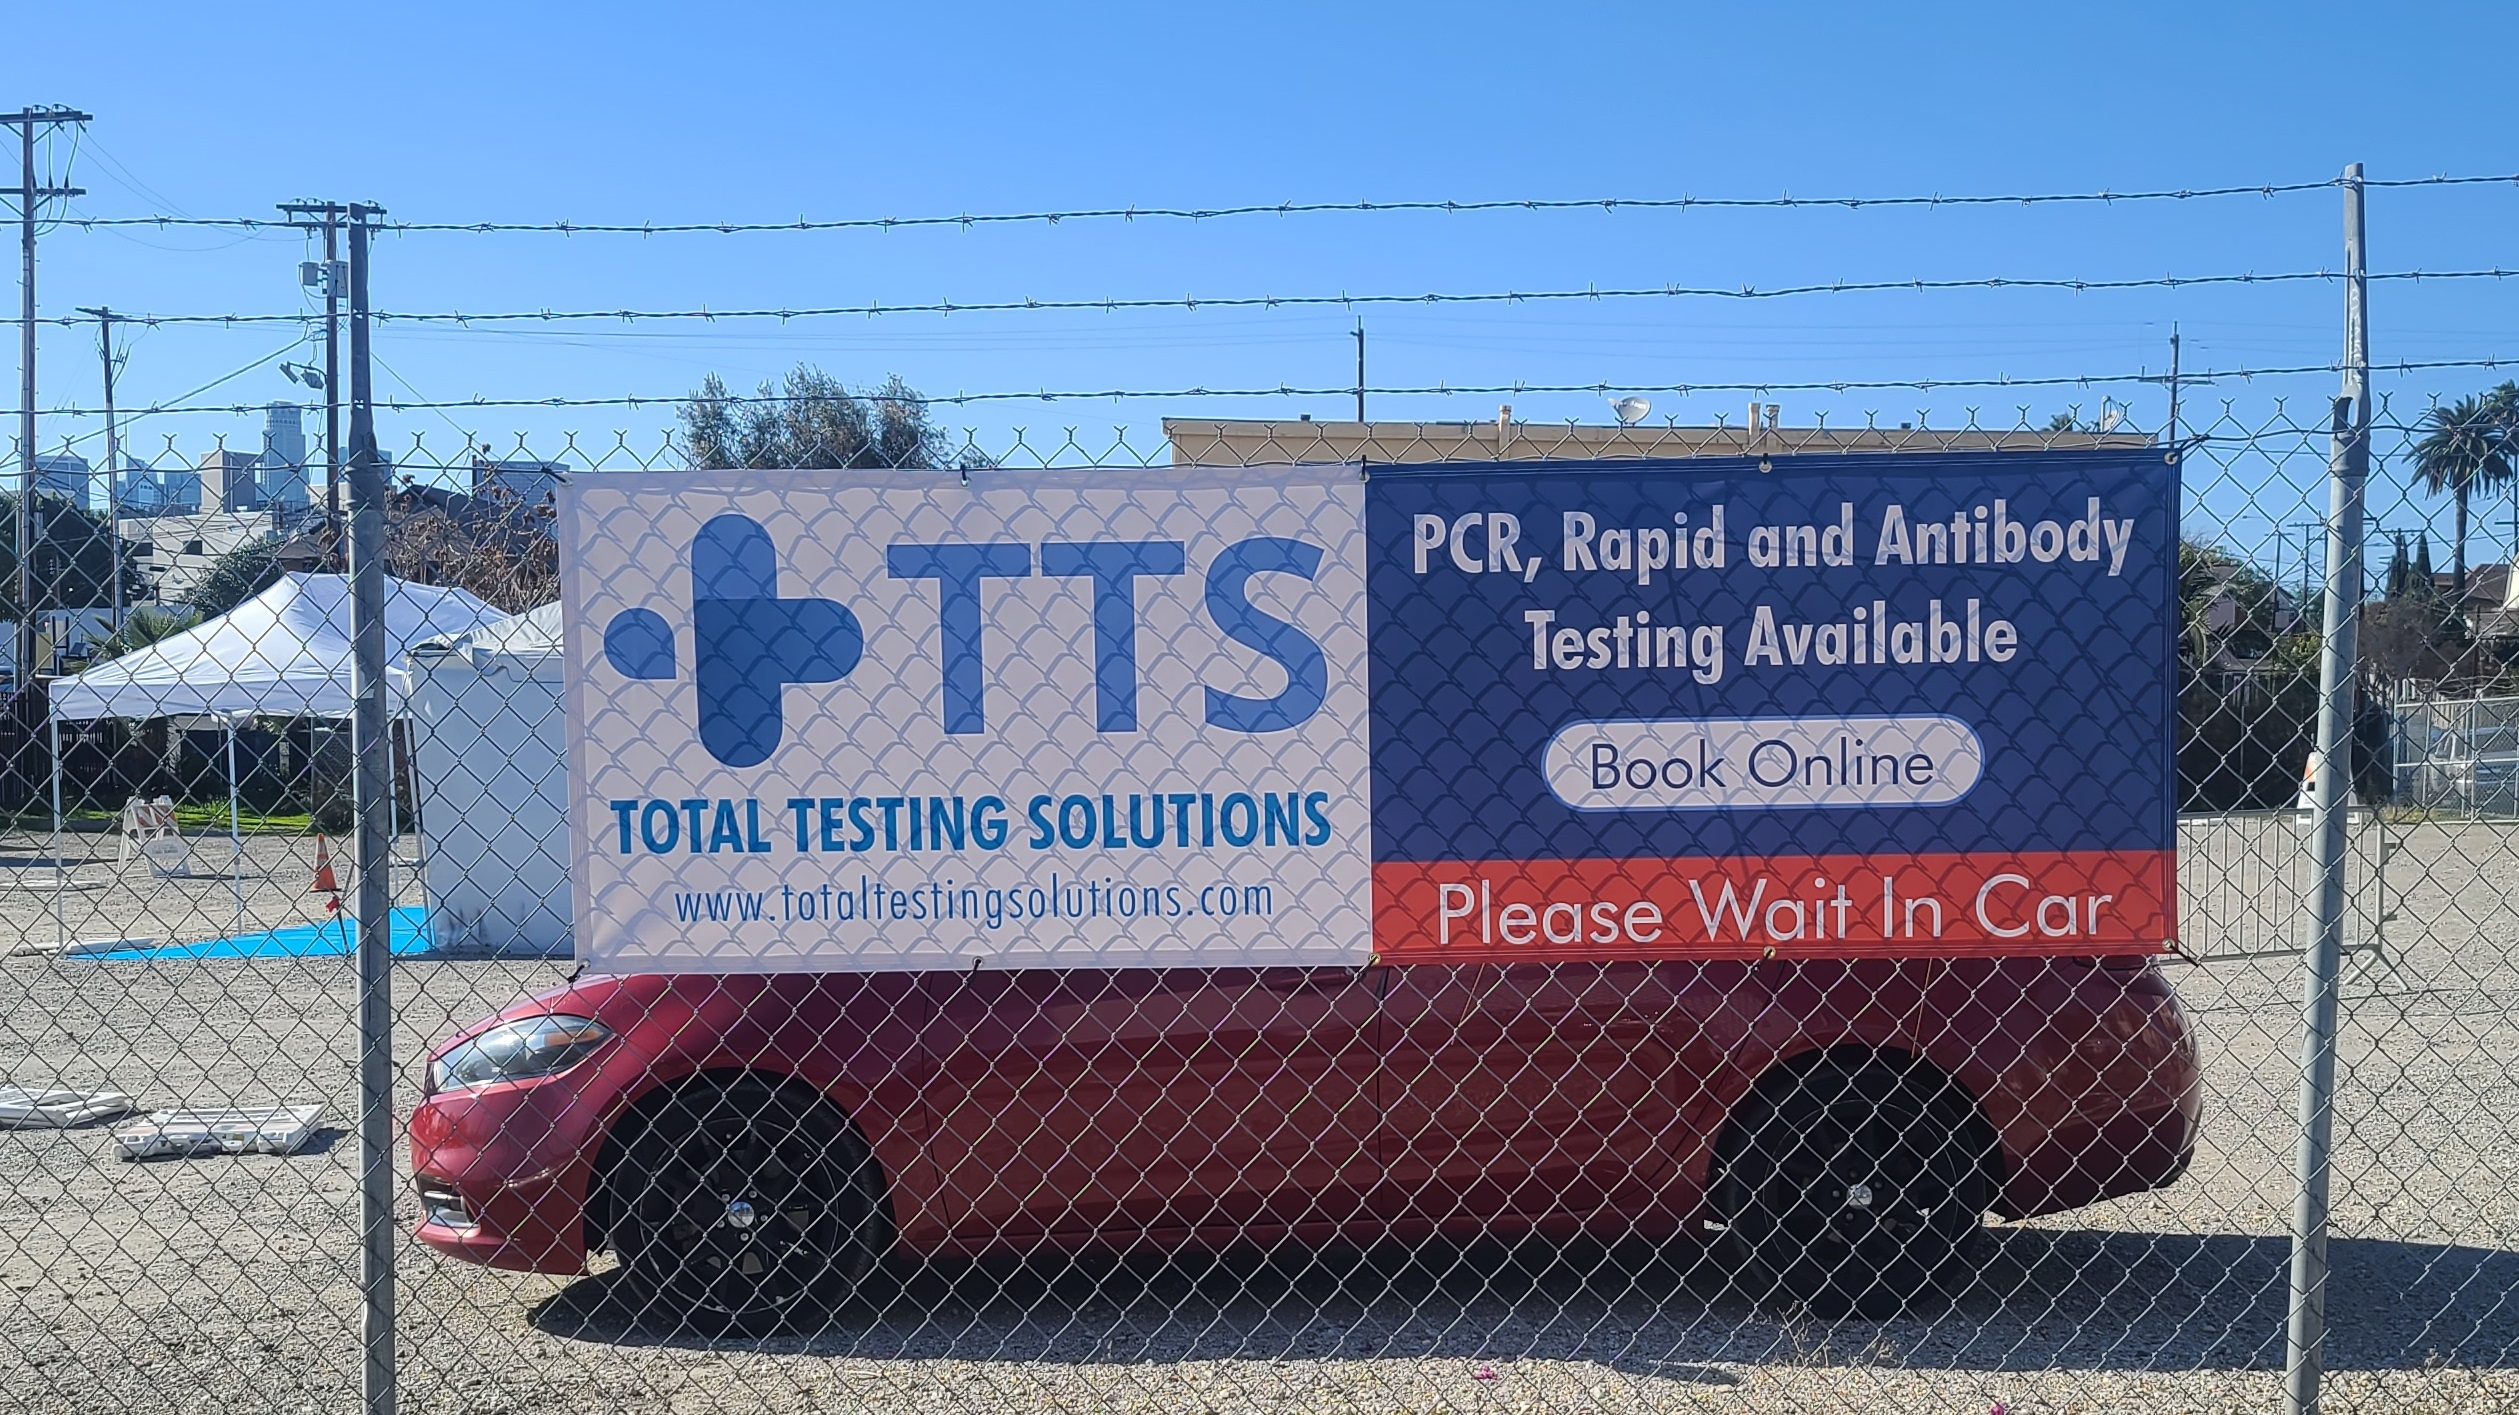 Here are two smaller custom banners for Total Testing Solutions' downtown Los Angeles location. These are part of the extensive sign package.